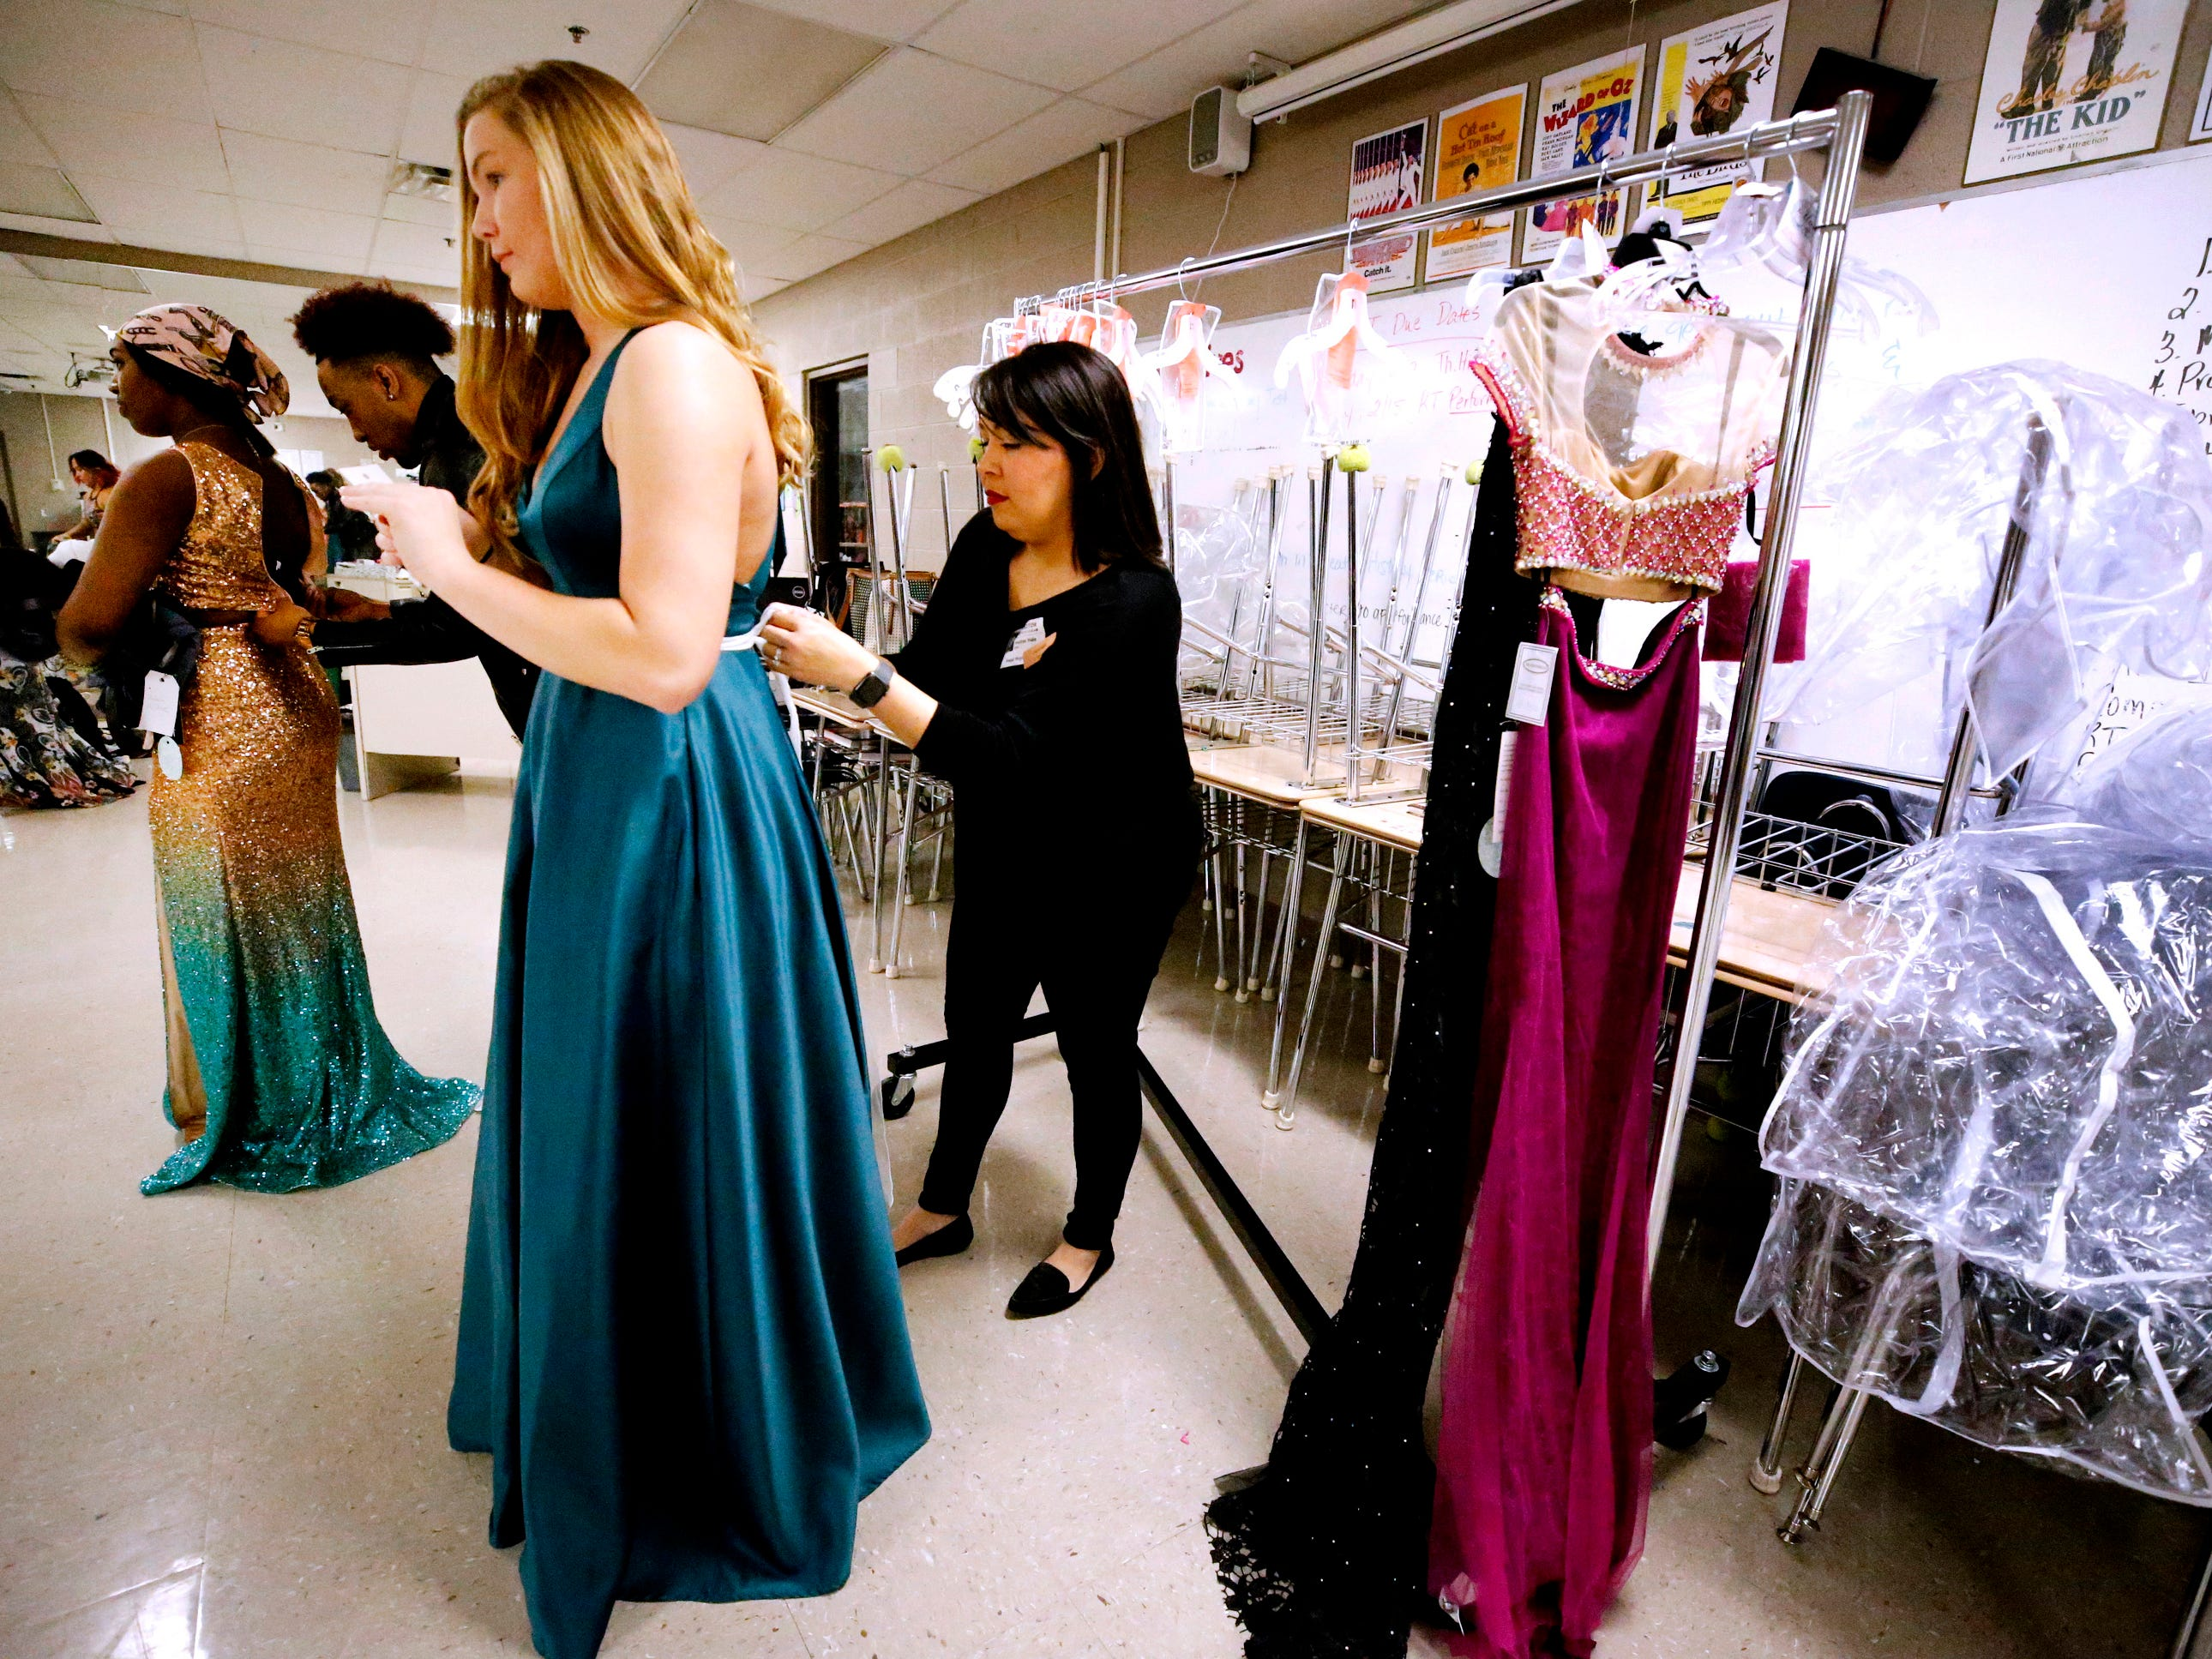 Heather Hale from David's Bridal ties a beaded sash onto Taylor Patterson's dress as they get ready for the Siegel Prom Fashion show on Thursday, Feb. 14, 2019.